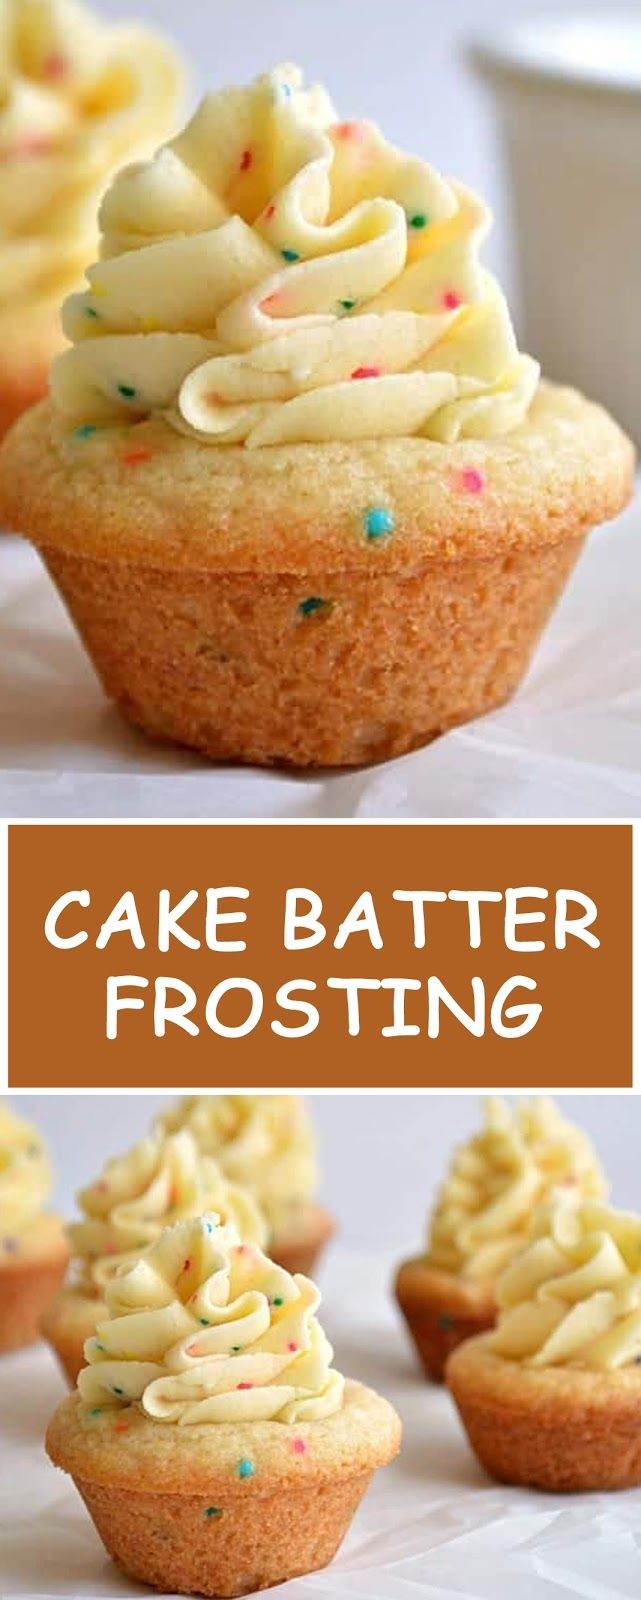 Cake Batter Frosting - All Recipe #cakebatter